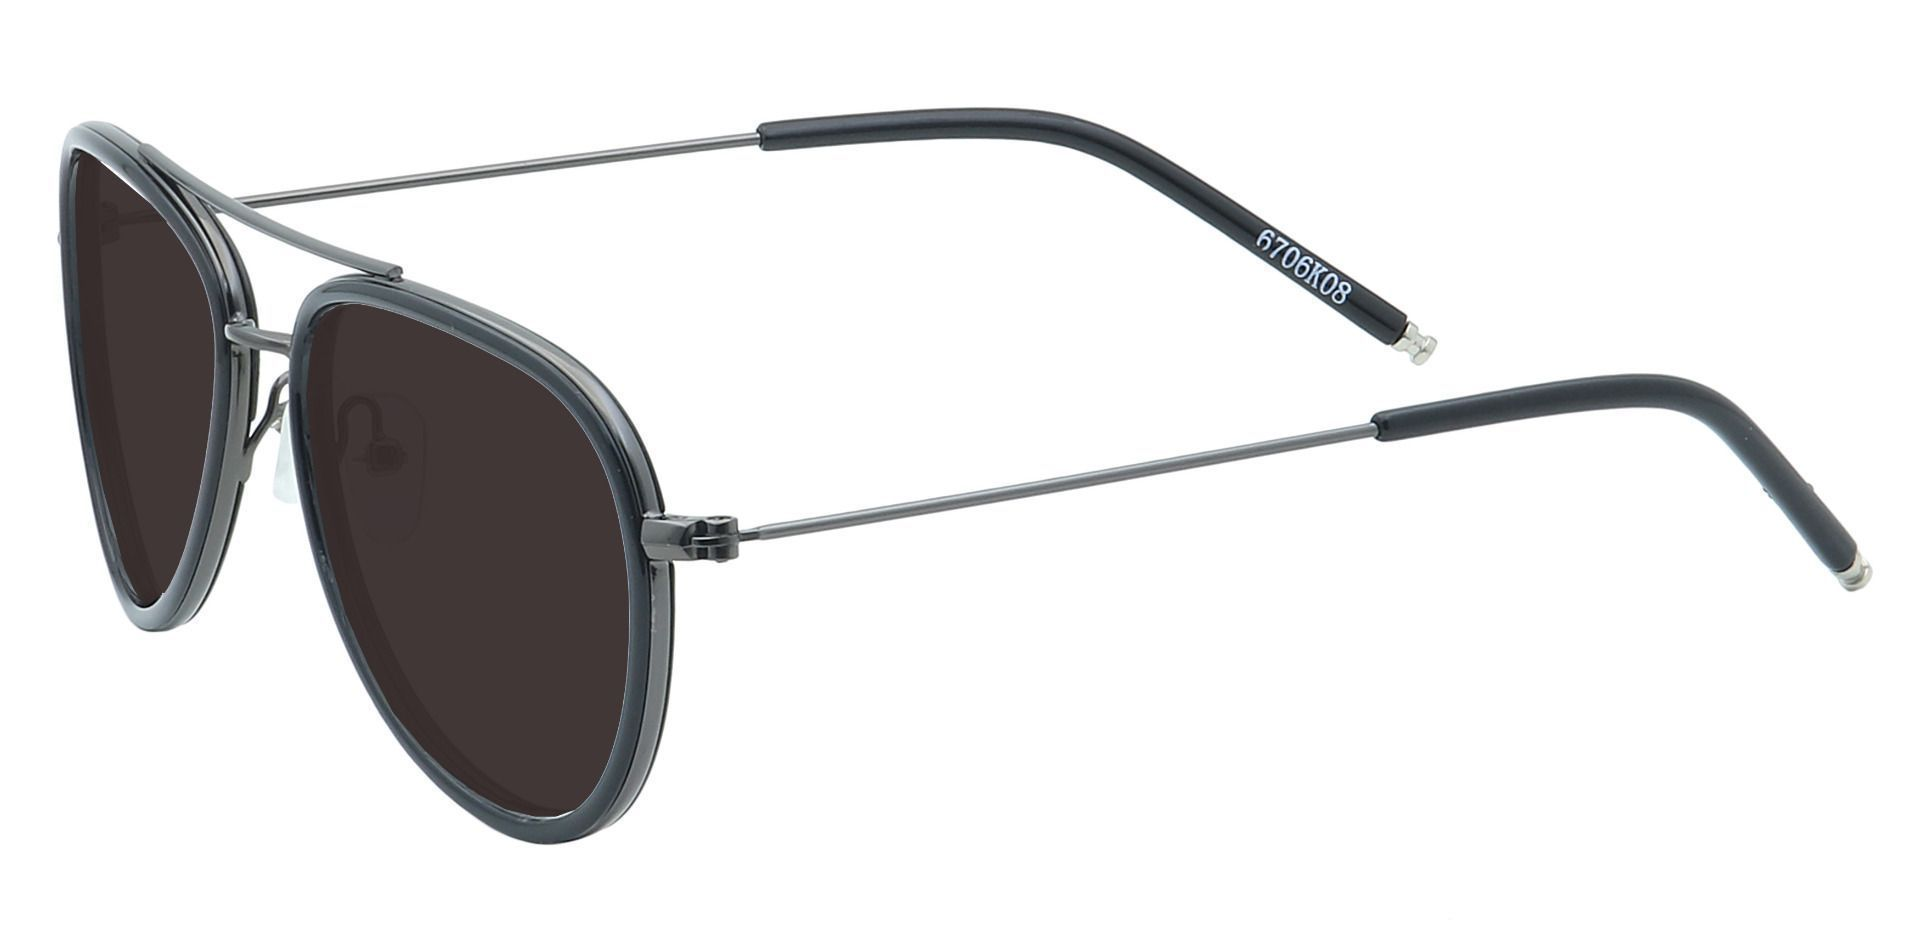 Ace Aviator Single Vision Sunglasses - Black Frame With Gray Lenses